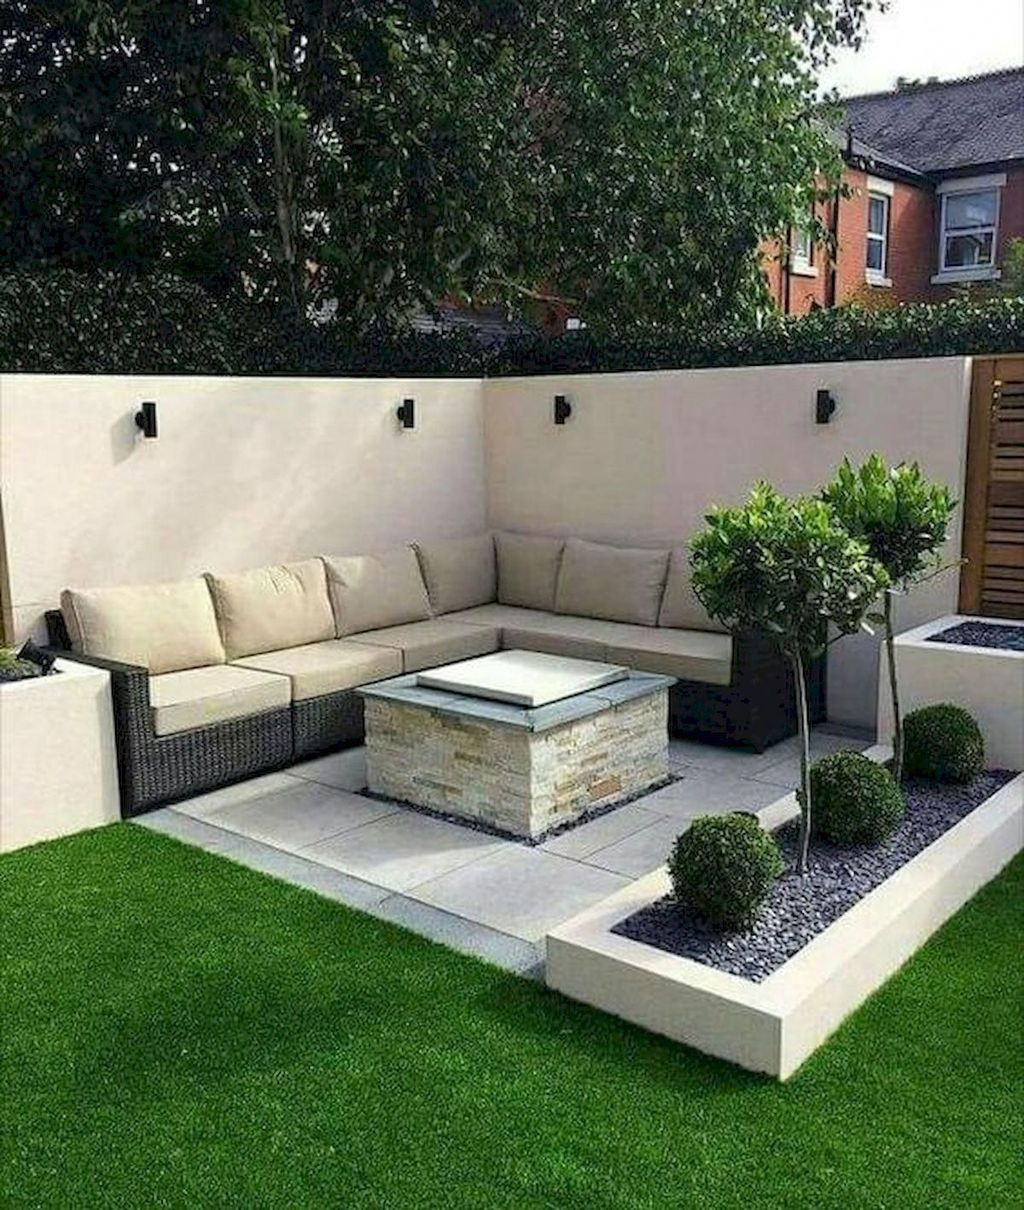 The Best Front Yard Landscaping Ideas Sitting Area 30